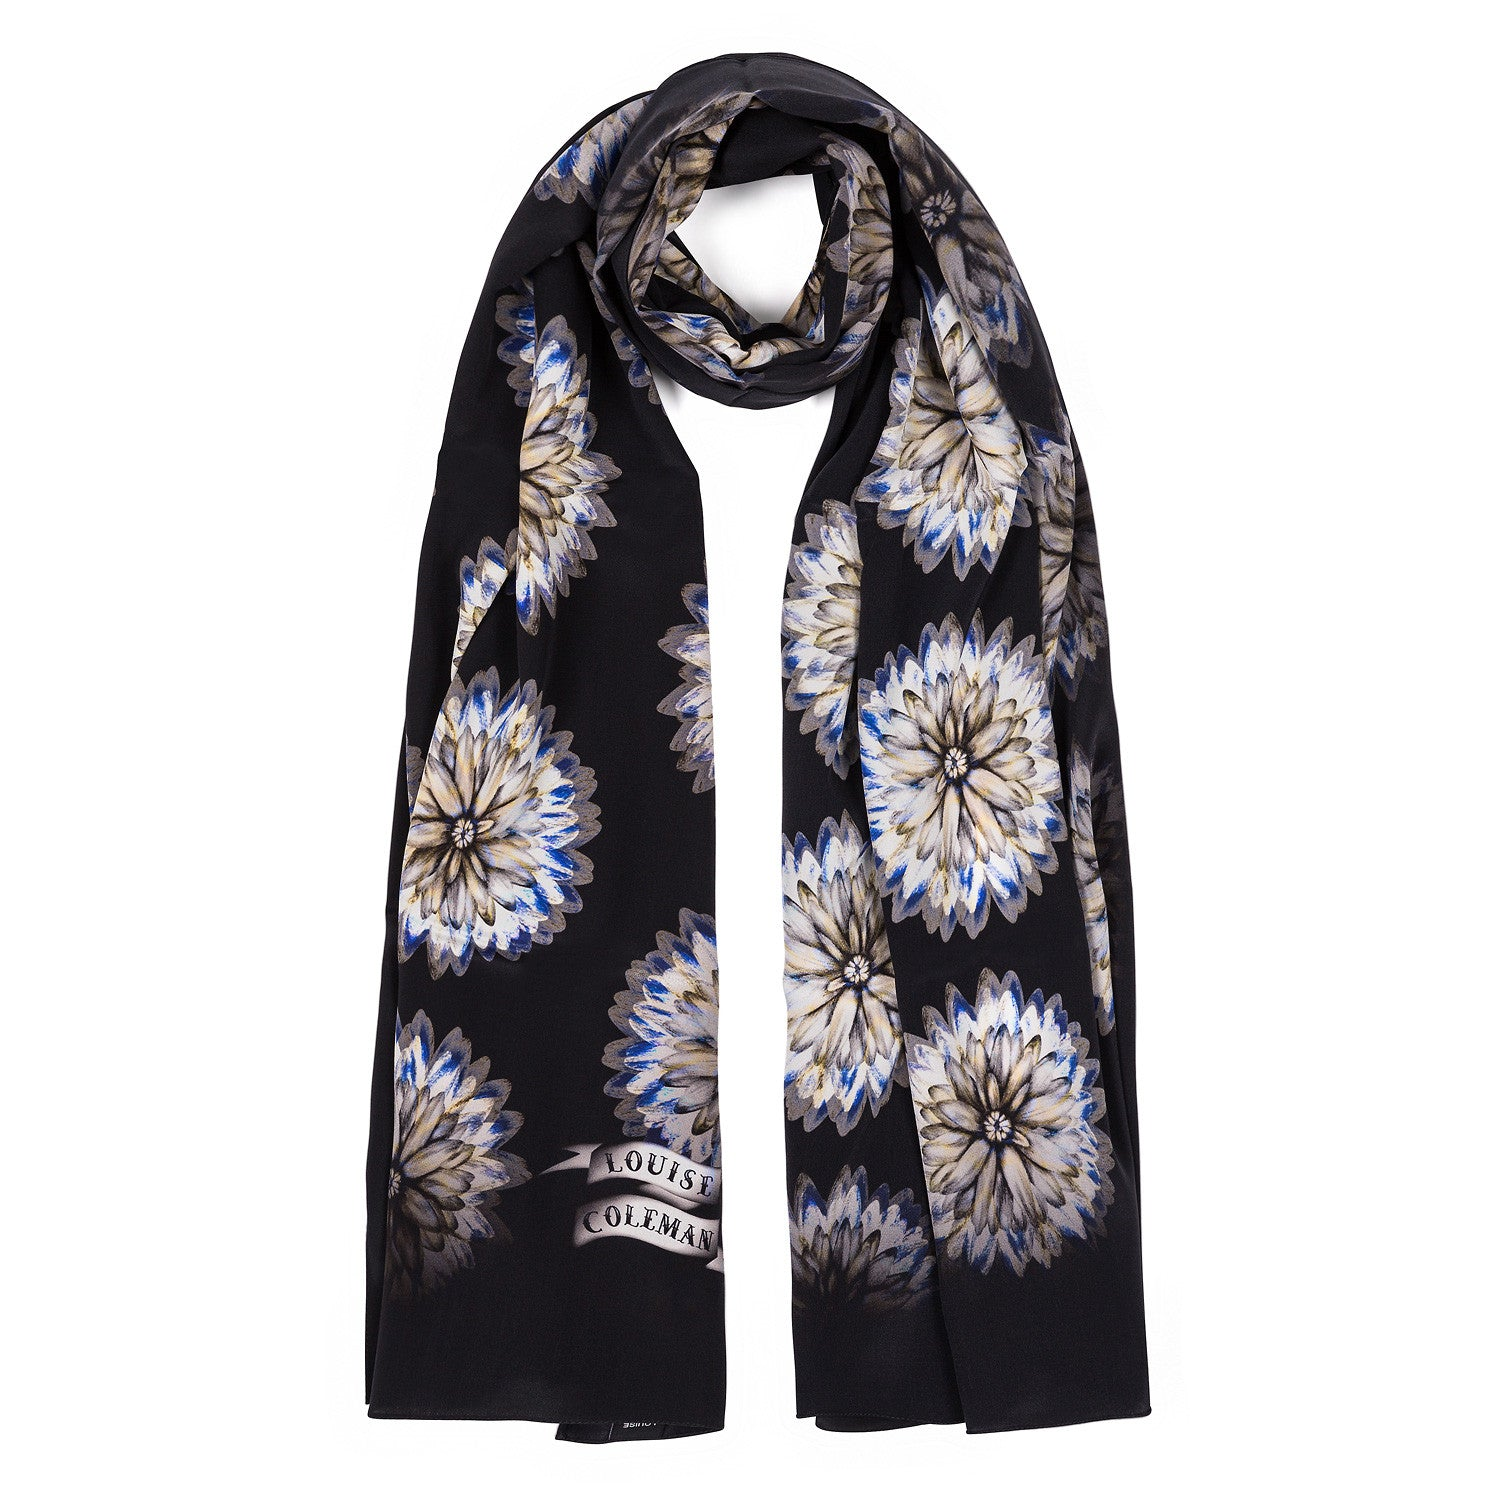 Daisy long silk scarf featuring hand illustrated daisy print by Louise Coleman